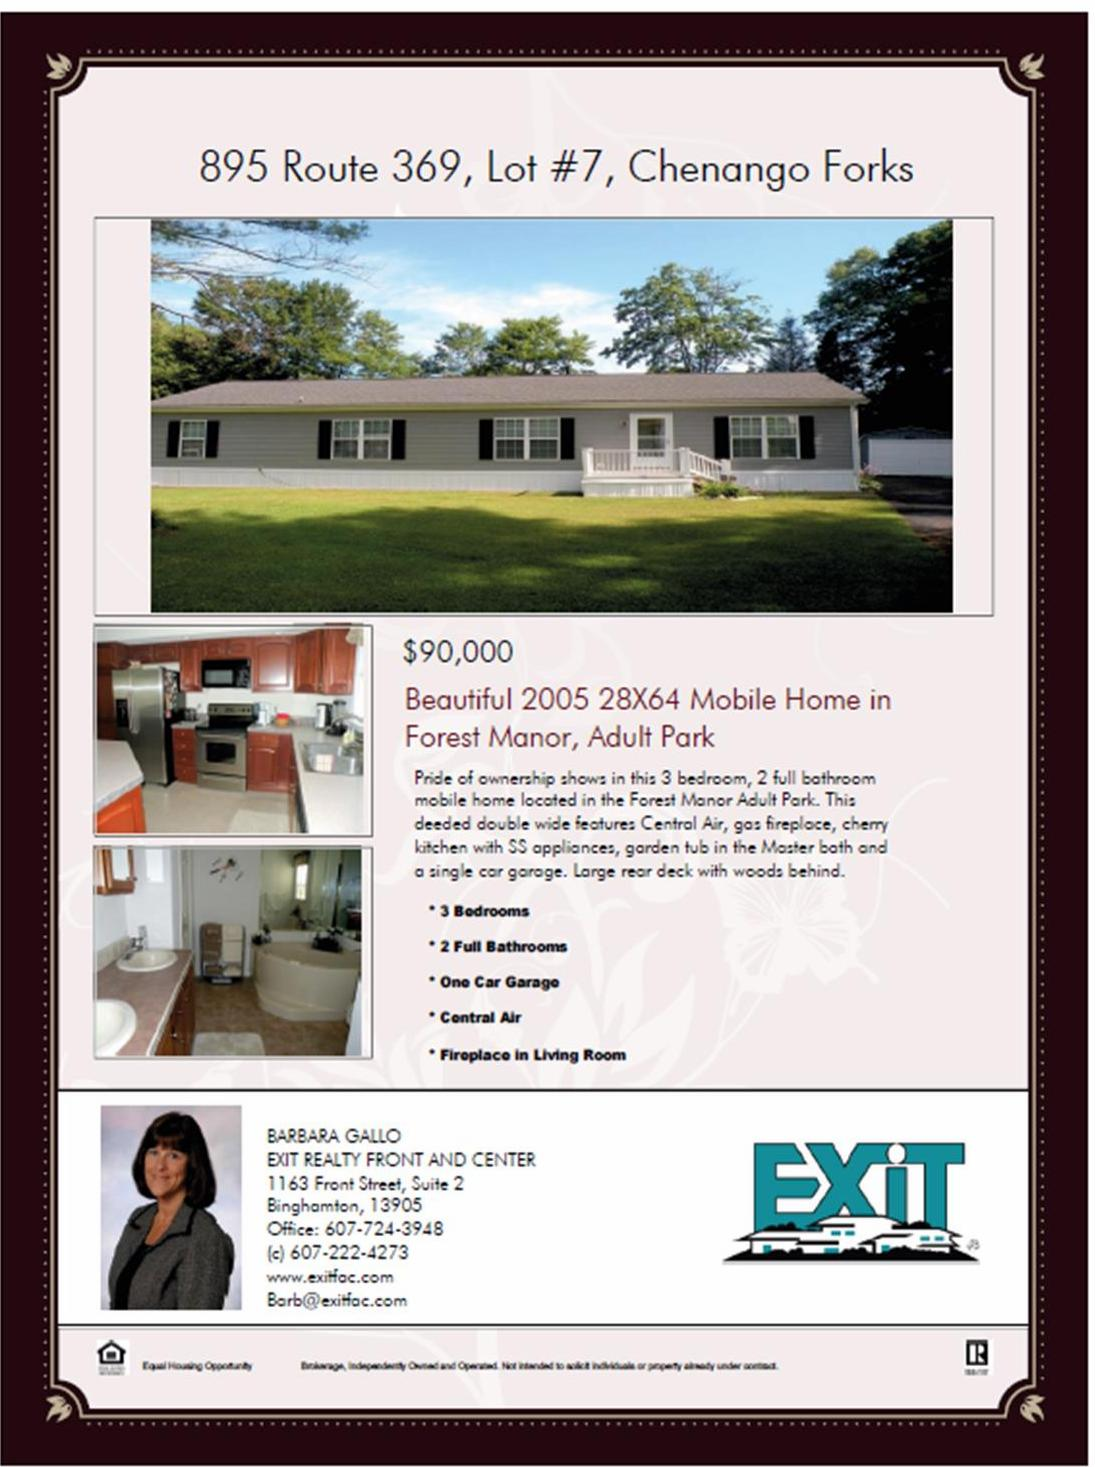 Flyer showing mobile home for sale